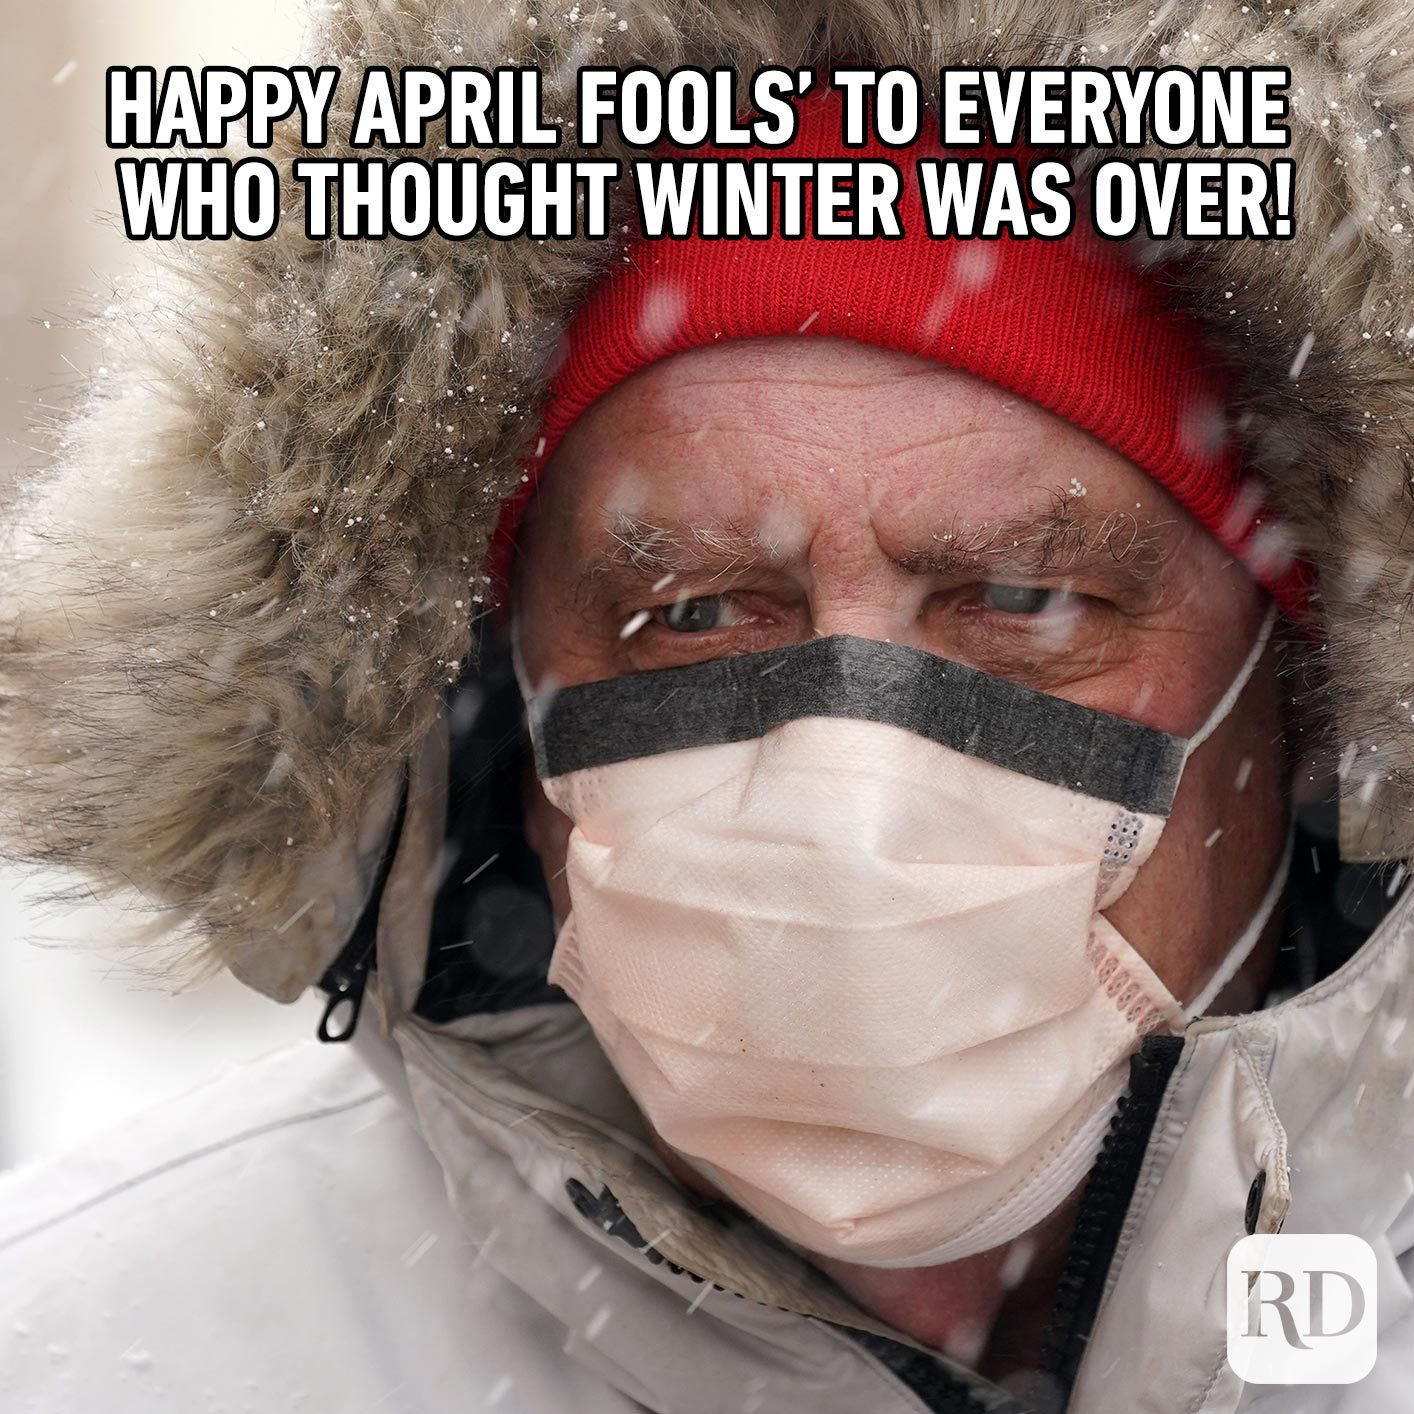 Man wearing a mask in the snow. Meme text: Happy April Fools' to everyone who thought winter was over!